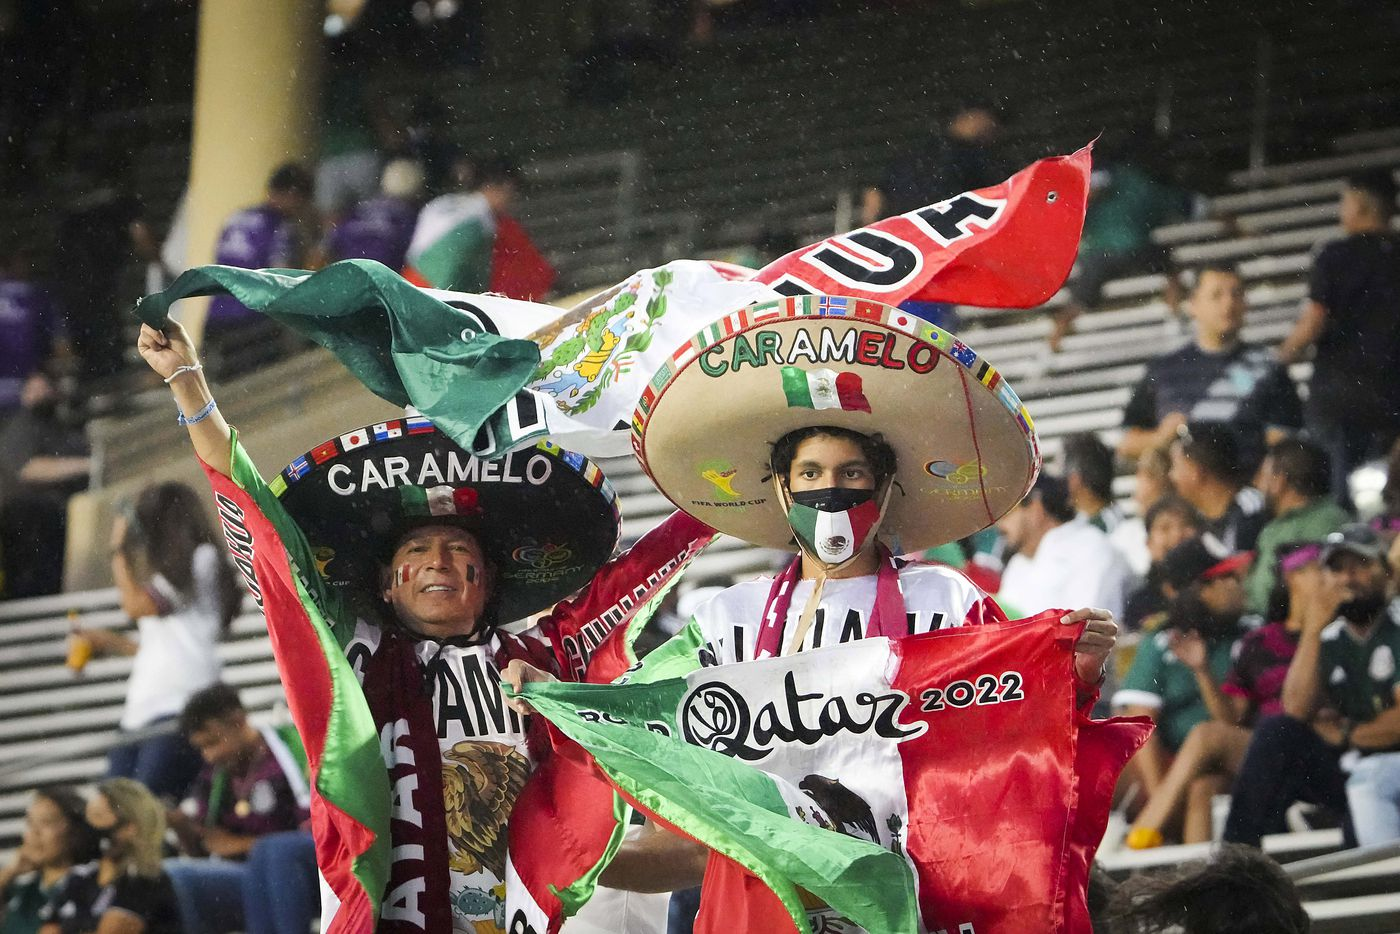 Mexico supporters cheer as rain falls on the stadium before a CONCACAF Gold Cup Group A soccer match against Guatemala at the Cotton Bowl on Wednesday, July 14, 2021, in Dallas. The start of the game was delayed due to weather.